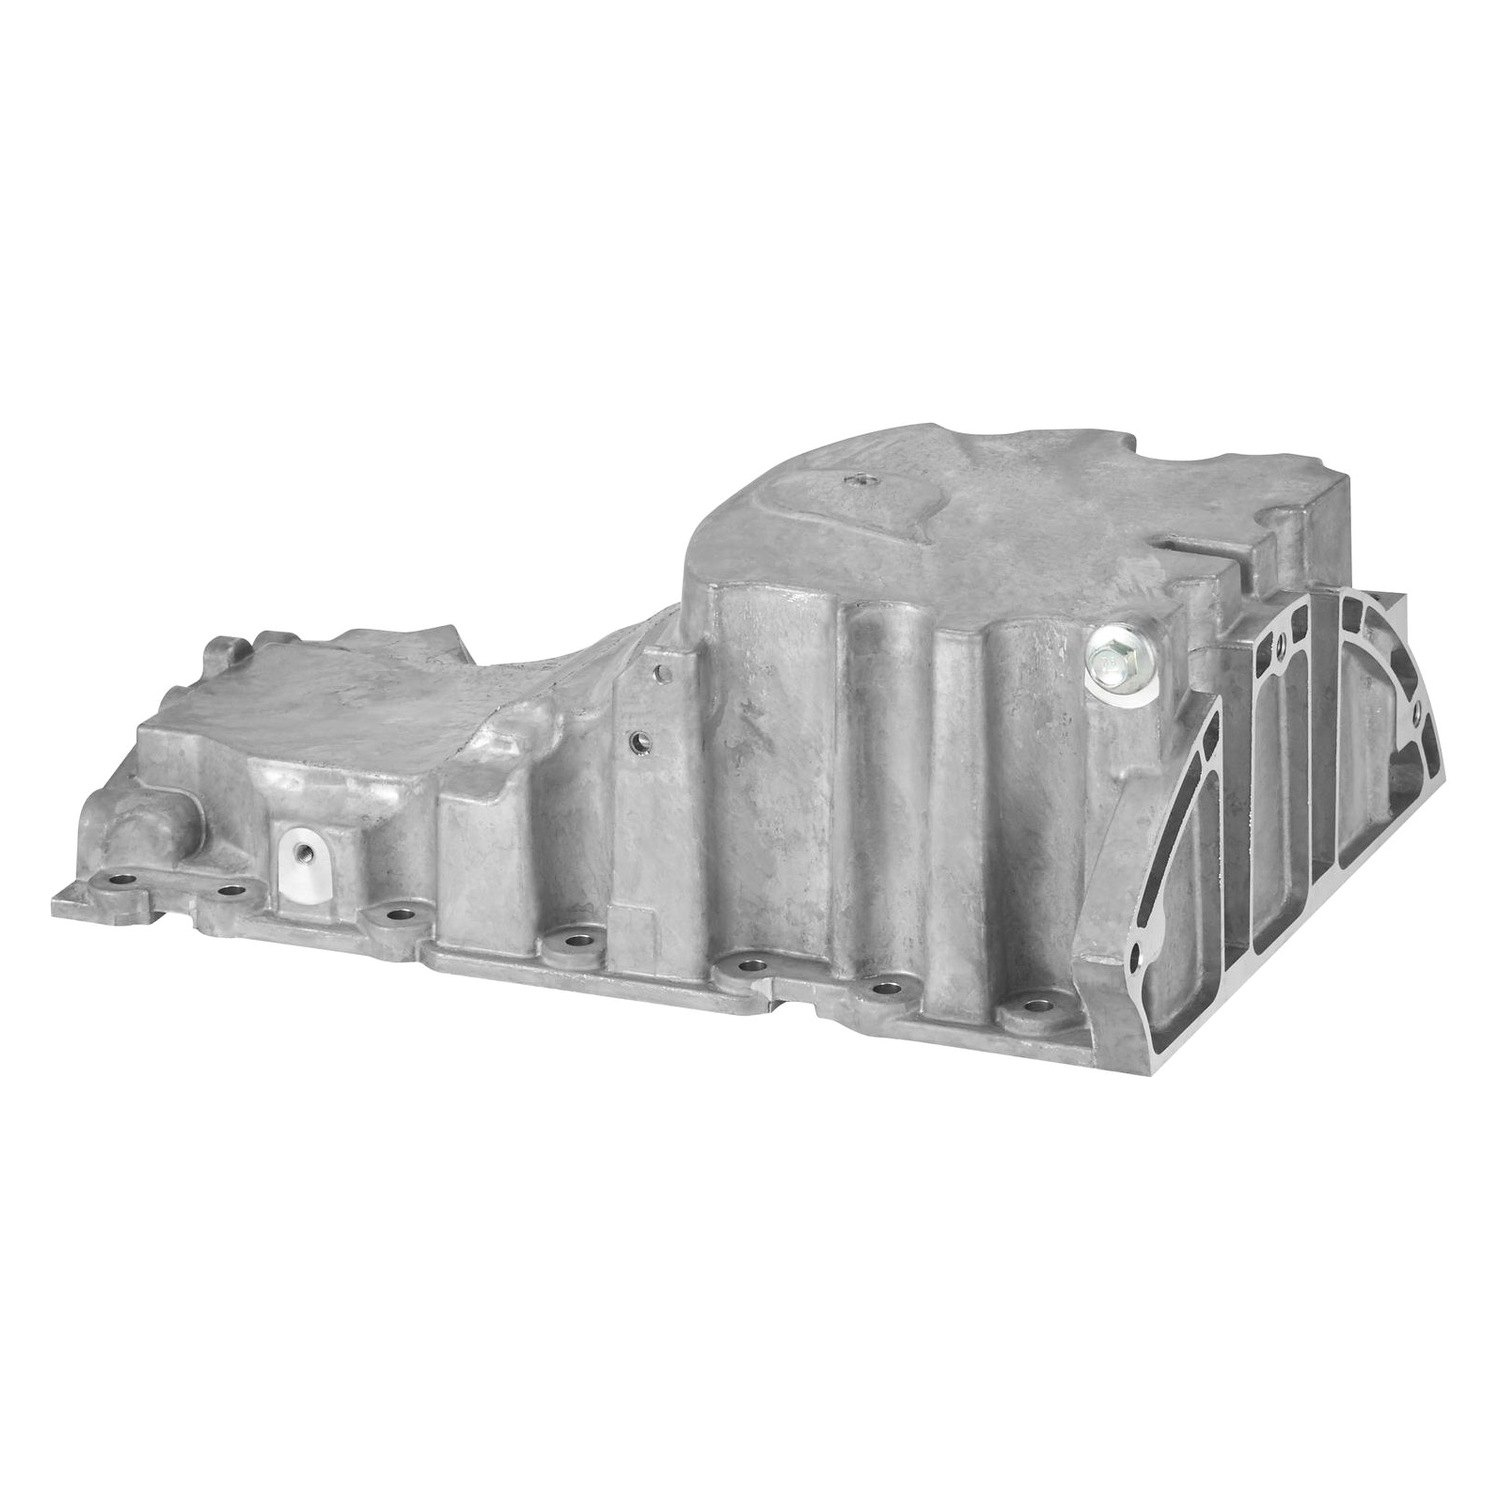 Engine Oil Pan Spectra FP67A